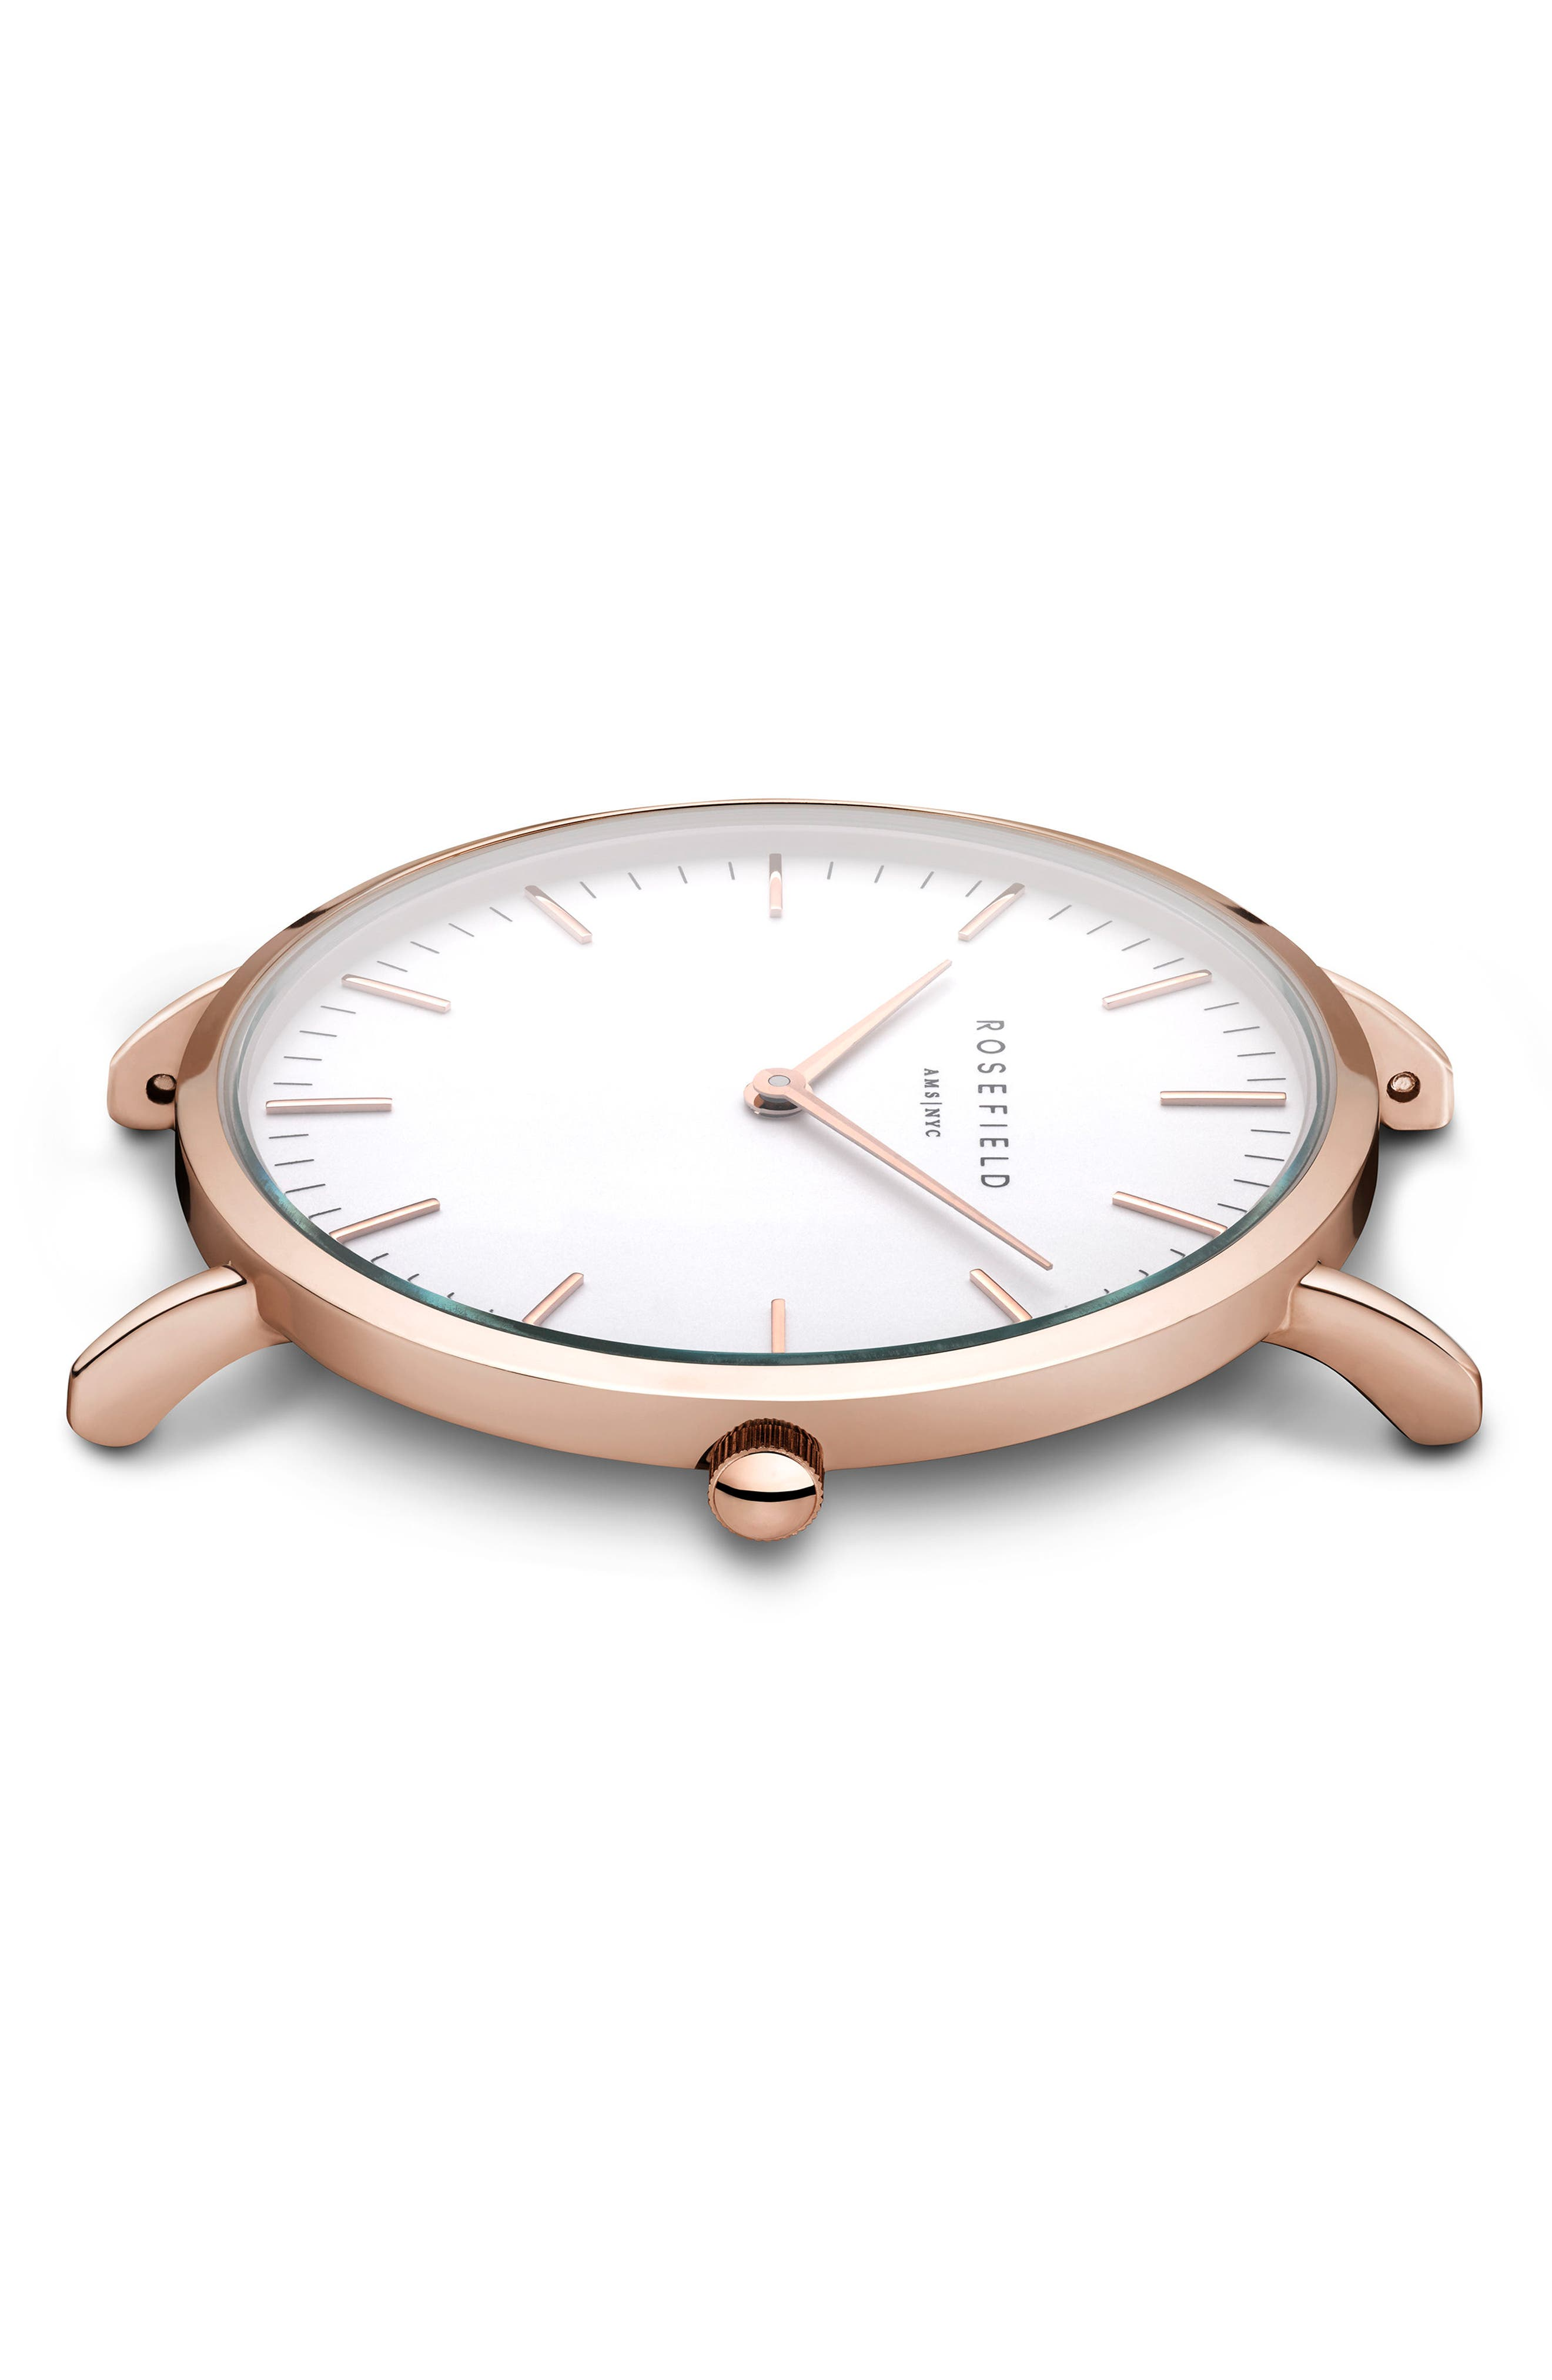 Bowery Leather Strap Watch, 38mm,                             Alternate thumbnail 3, color,                             Pink/ White/ Rose Gold